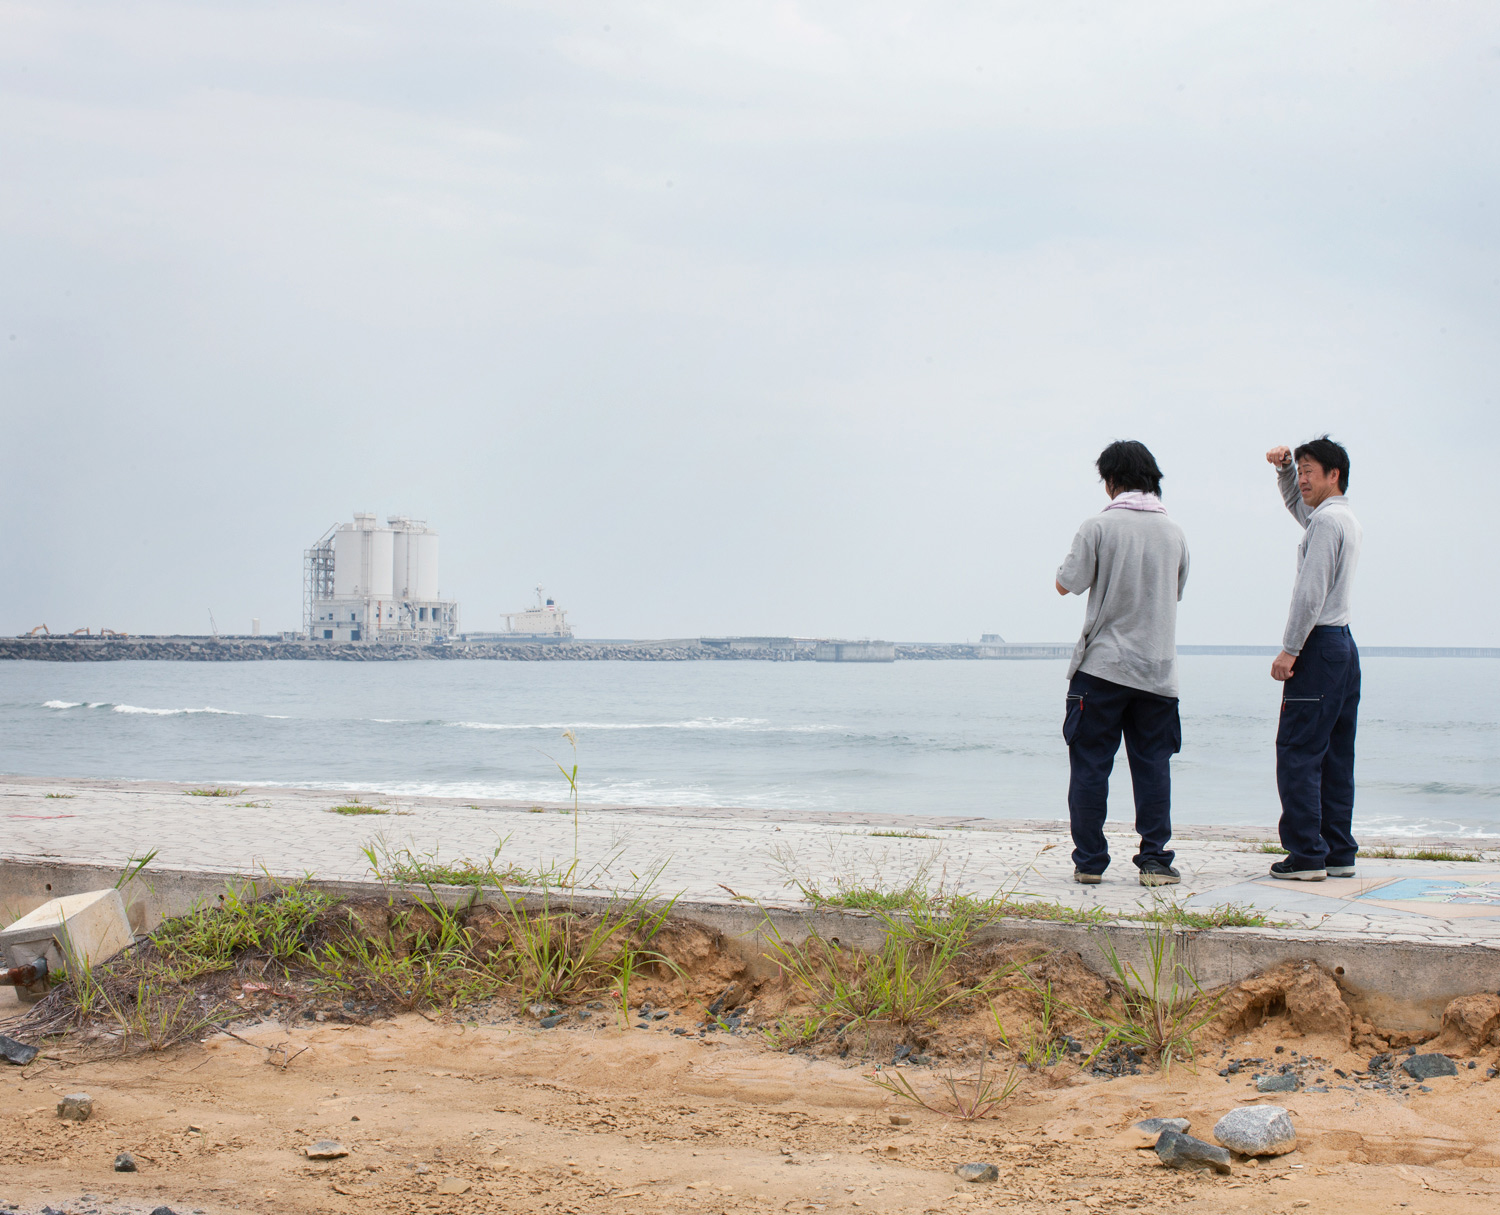 Two men look at the Fukushima Haramachi Thermal Plant